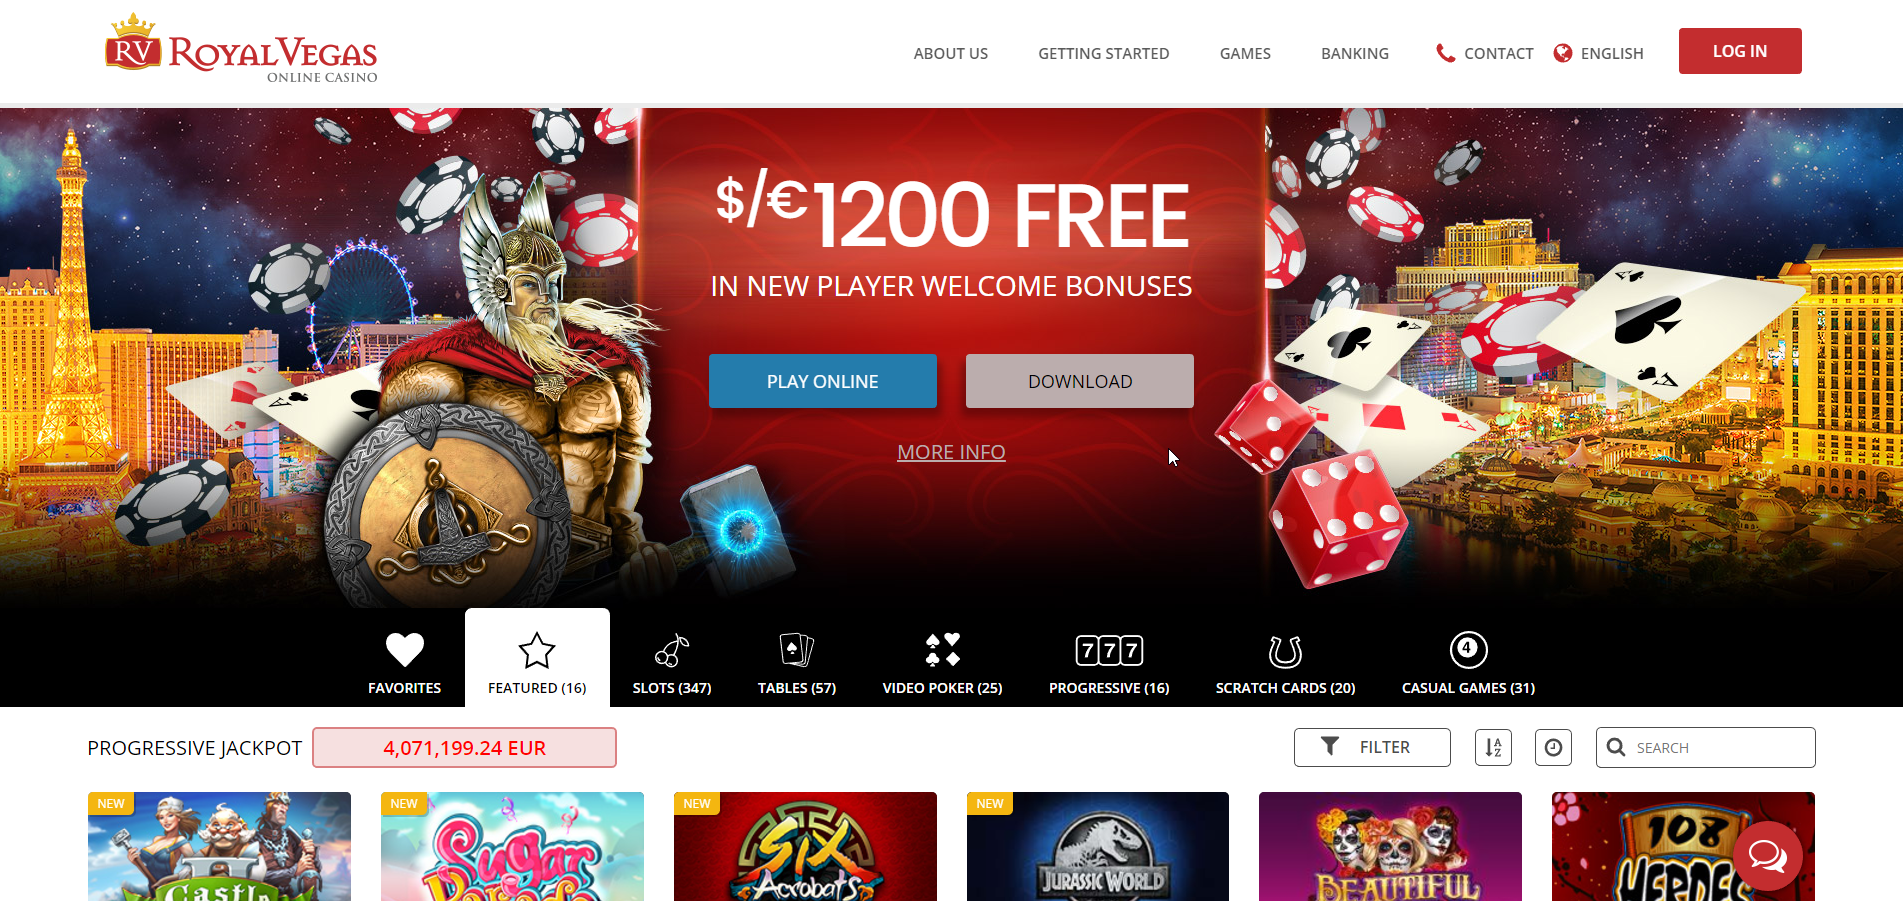 Royal Vegas Casino Online Review With Promotions & Bonuses